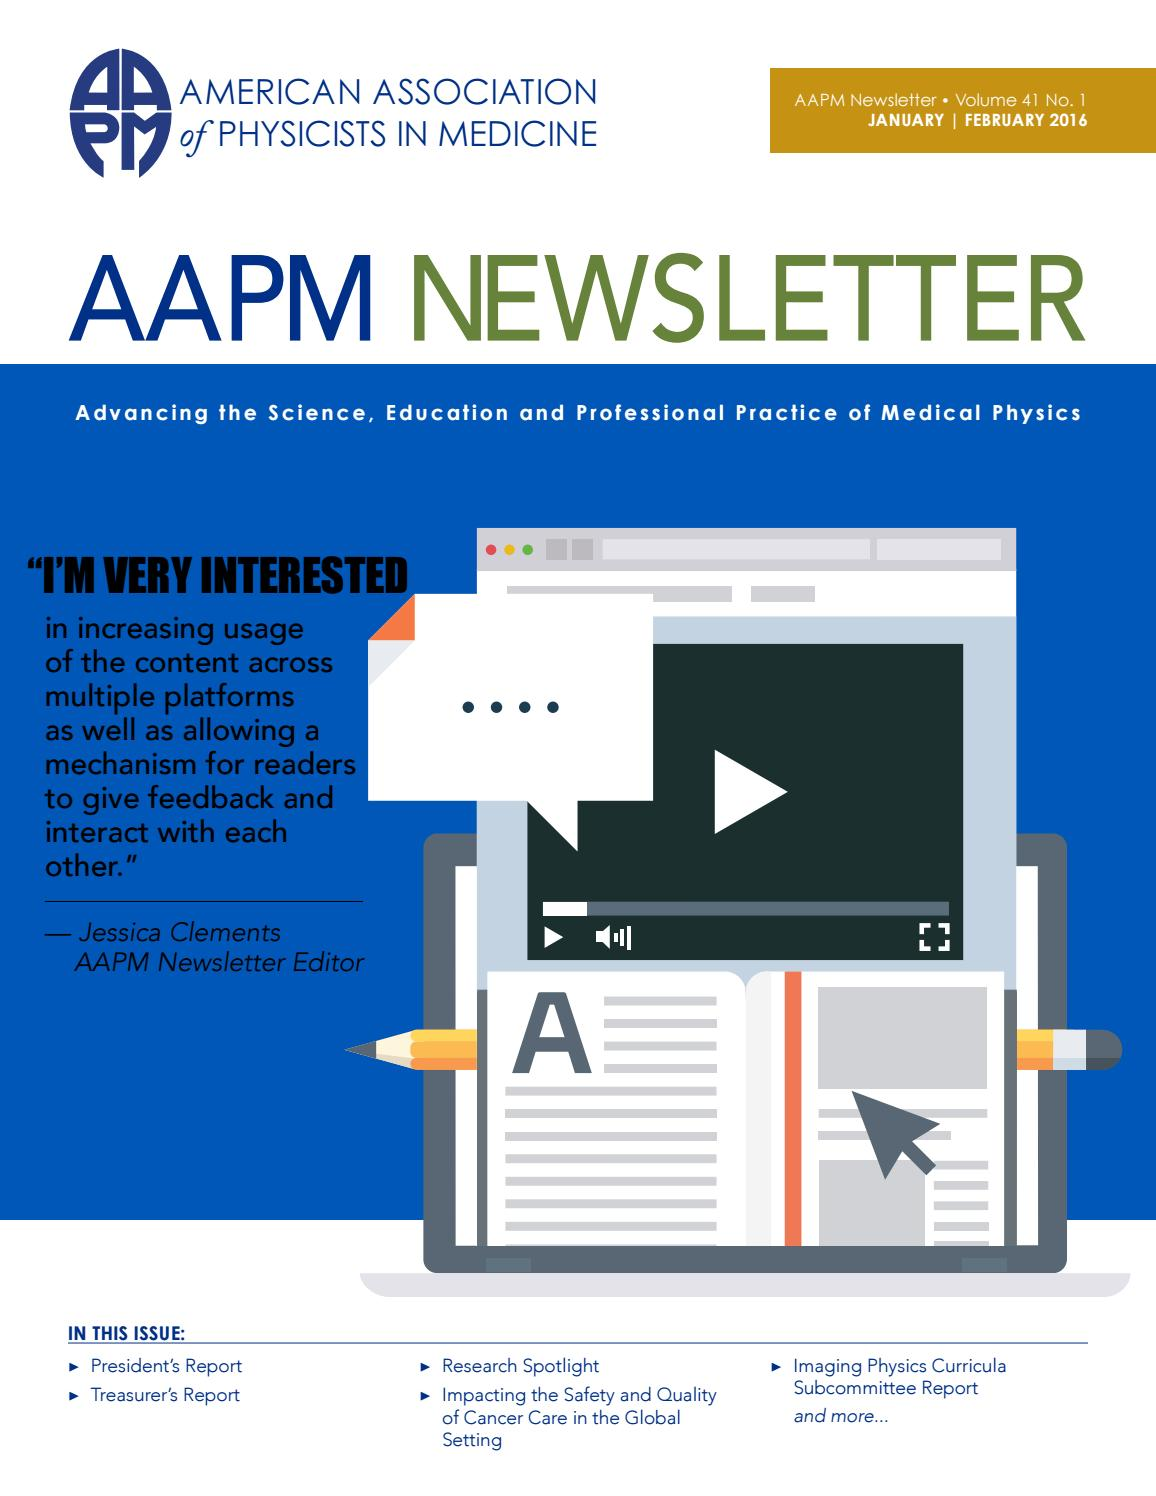 AAPM Newsletter January/February 2016 Vol  41 No  1 by